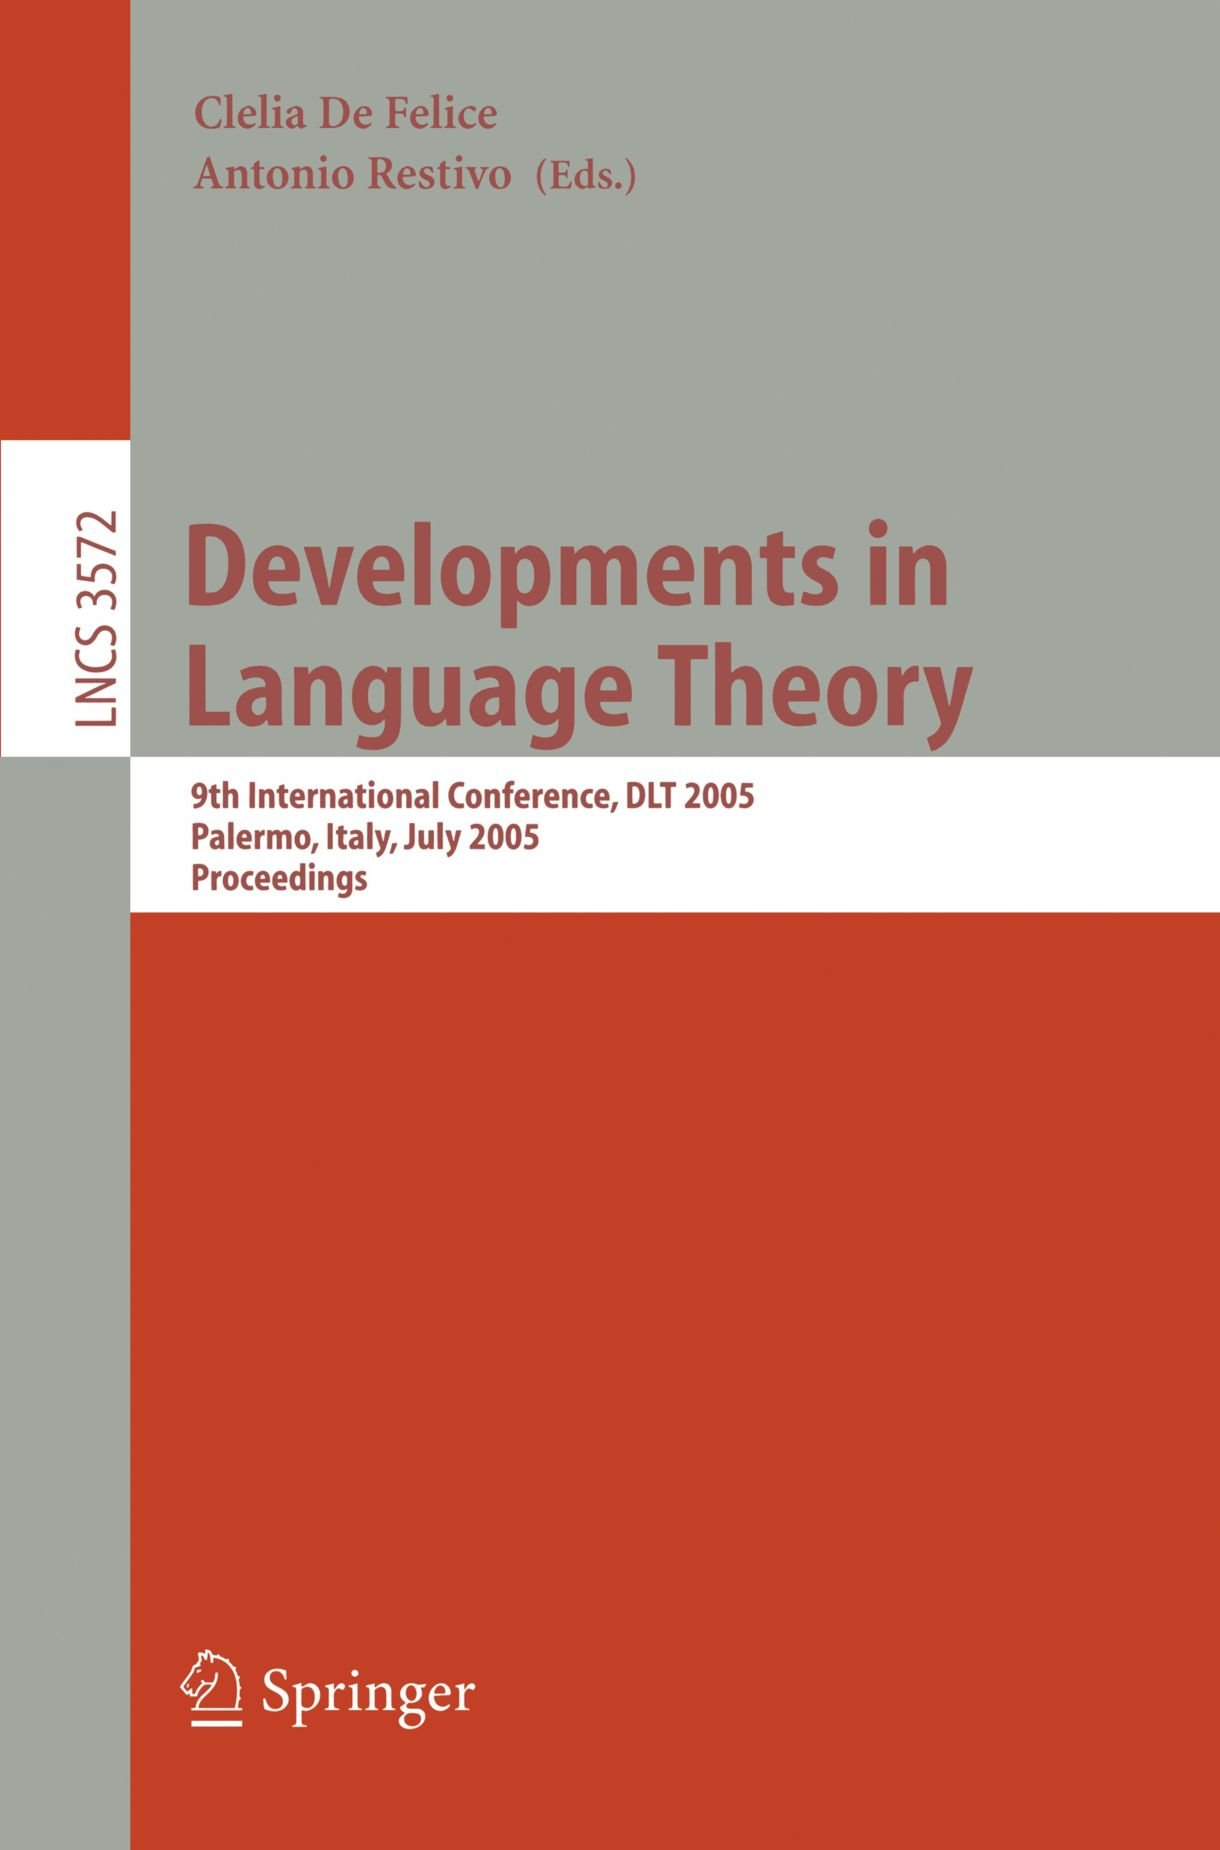 Developments in Language Theory: 9th International Conference, DLT 2005, Palermo, Italy, July 4-8, 2005, Proceedings (Lecture Notes in Computer Science)